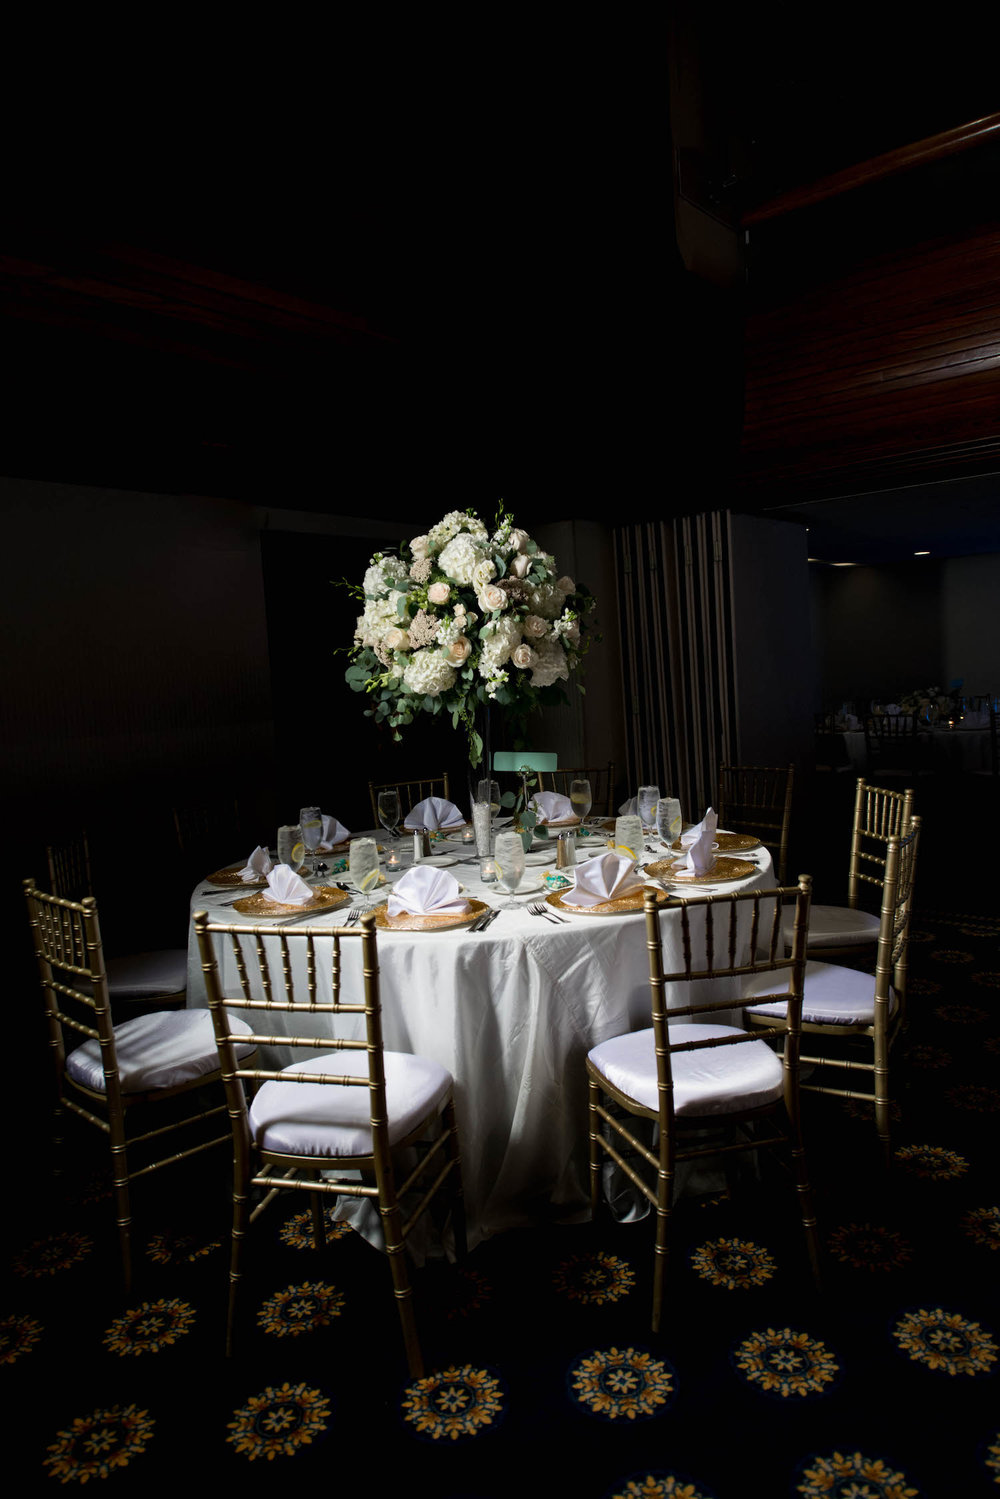 Washington DC Wedding - Sincerely Pete Events - Erin Tetterton Photography - National Press Club Wedding